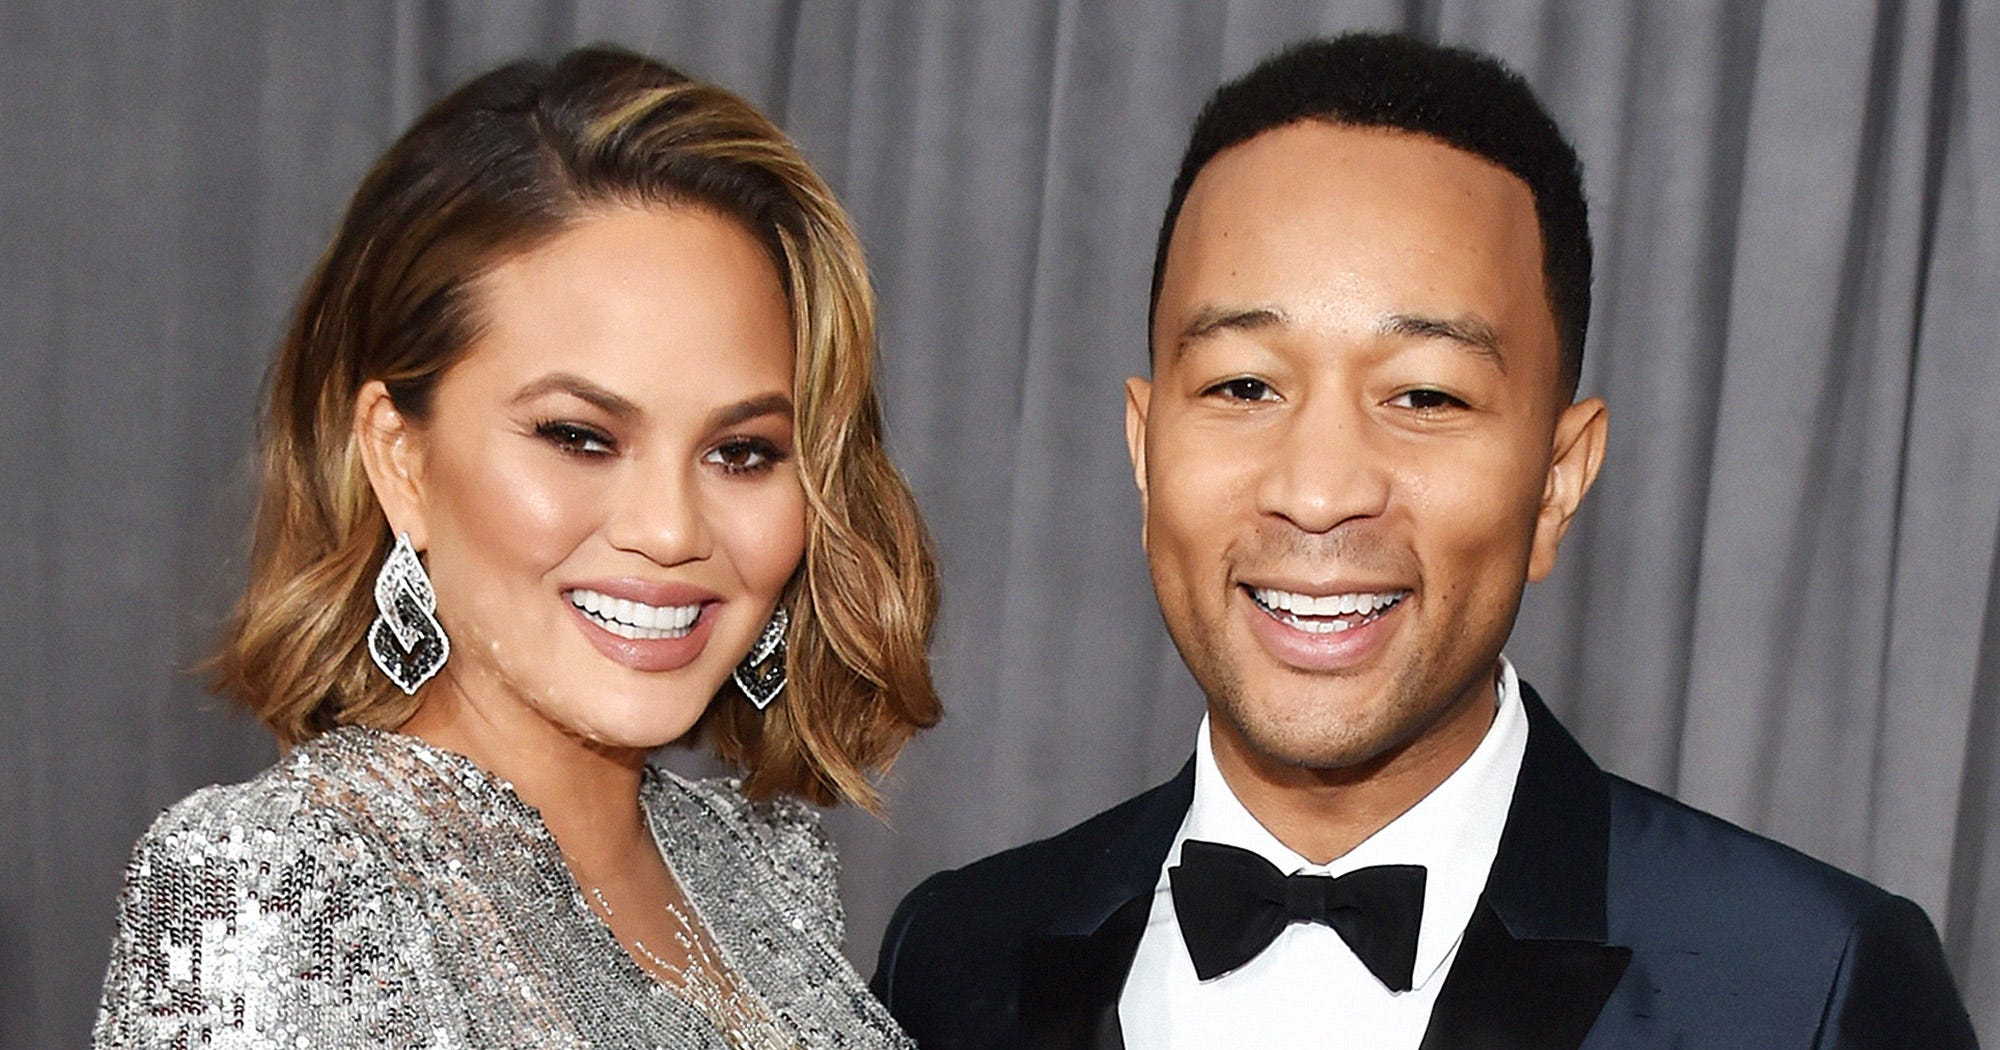 Chrissy Teigen Shares The First Photo Of Baby Miles